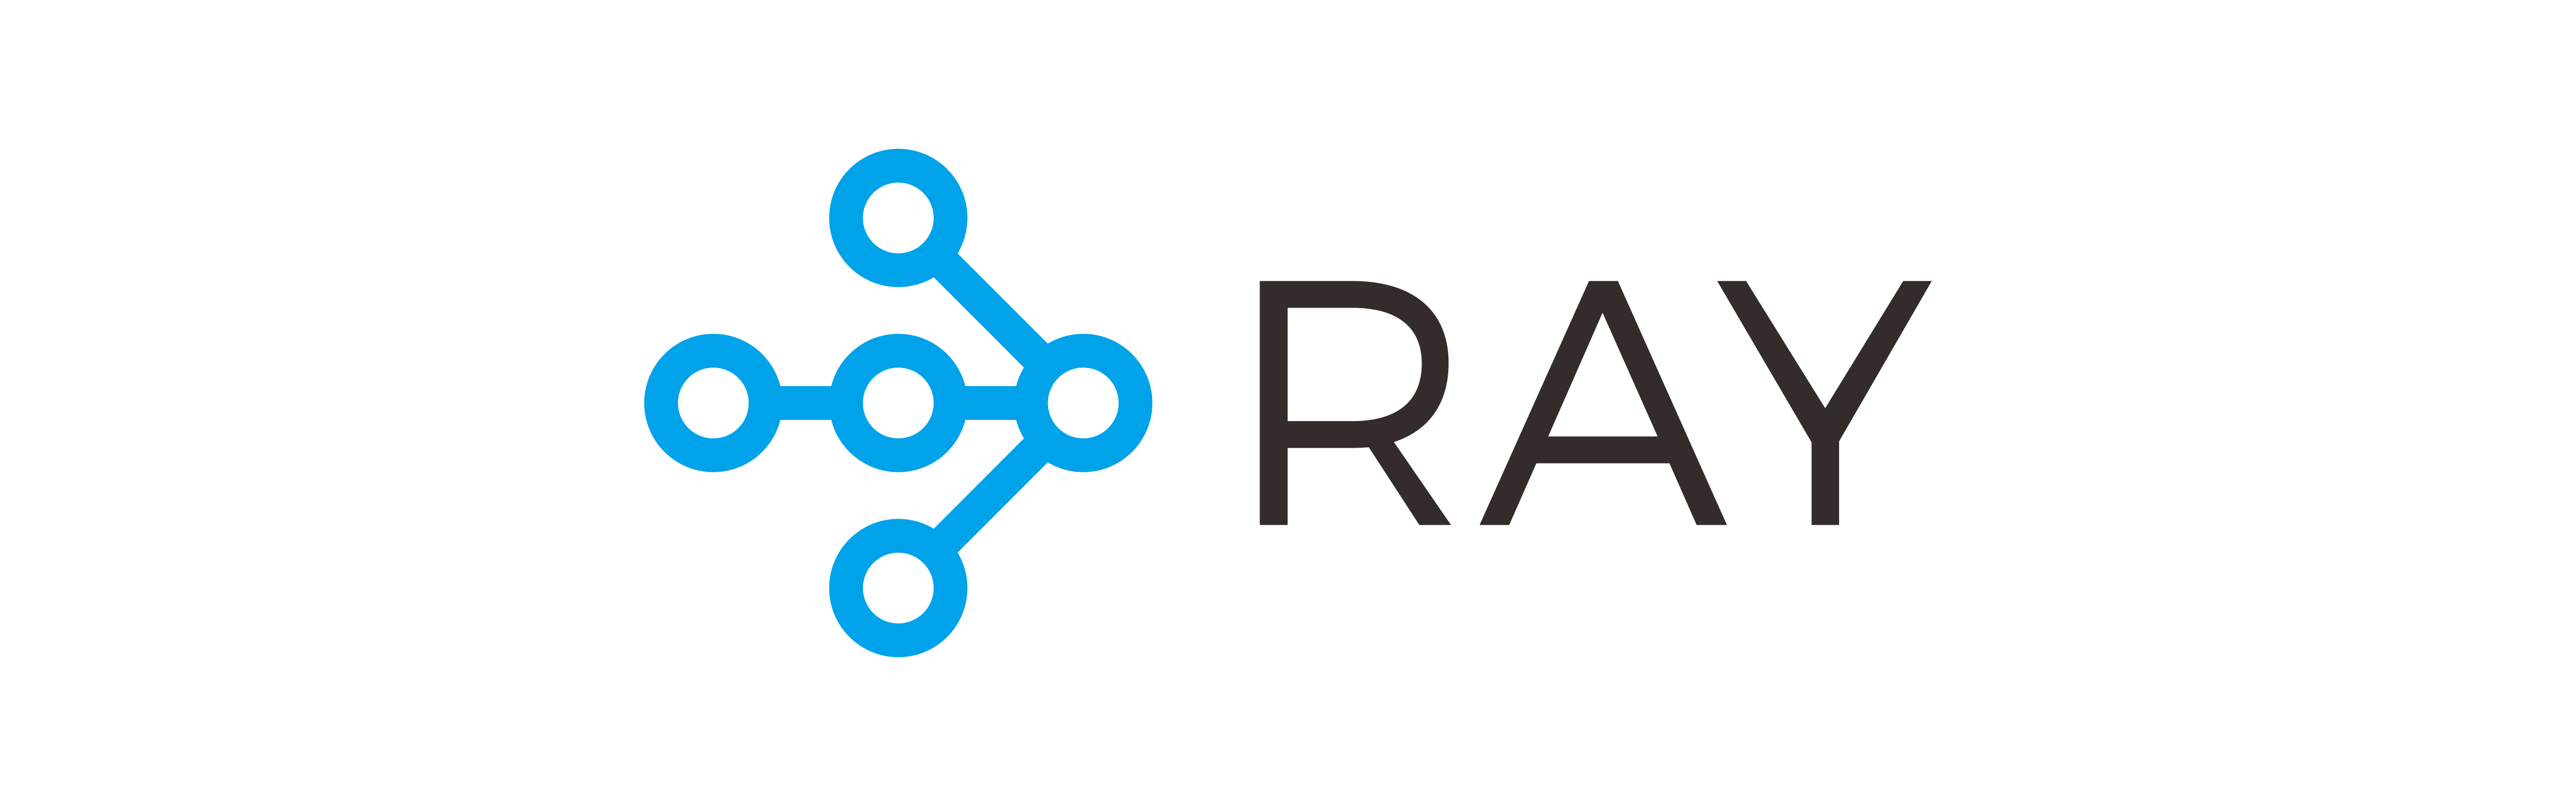 https://github.com/ray-project/ray/raw/master/doc/source/images/ray_header_logo.png